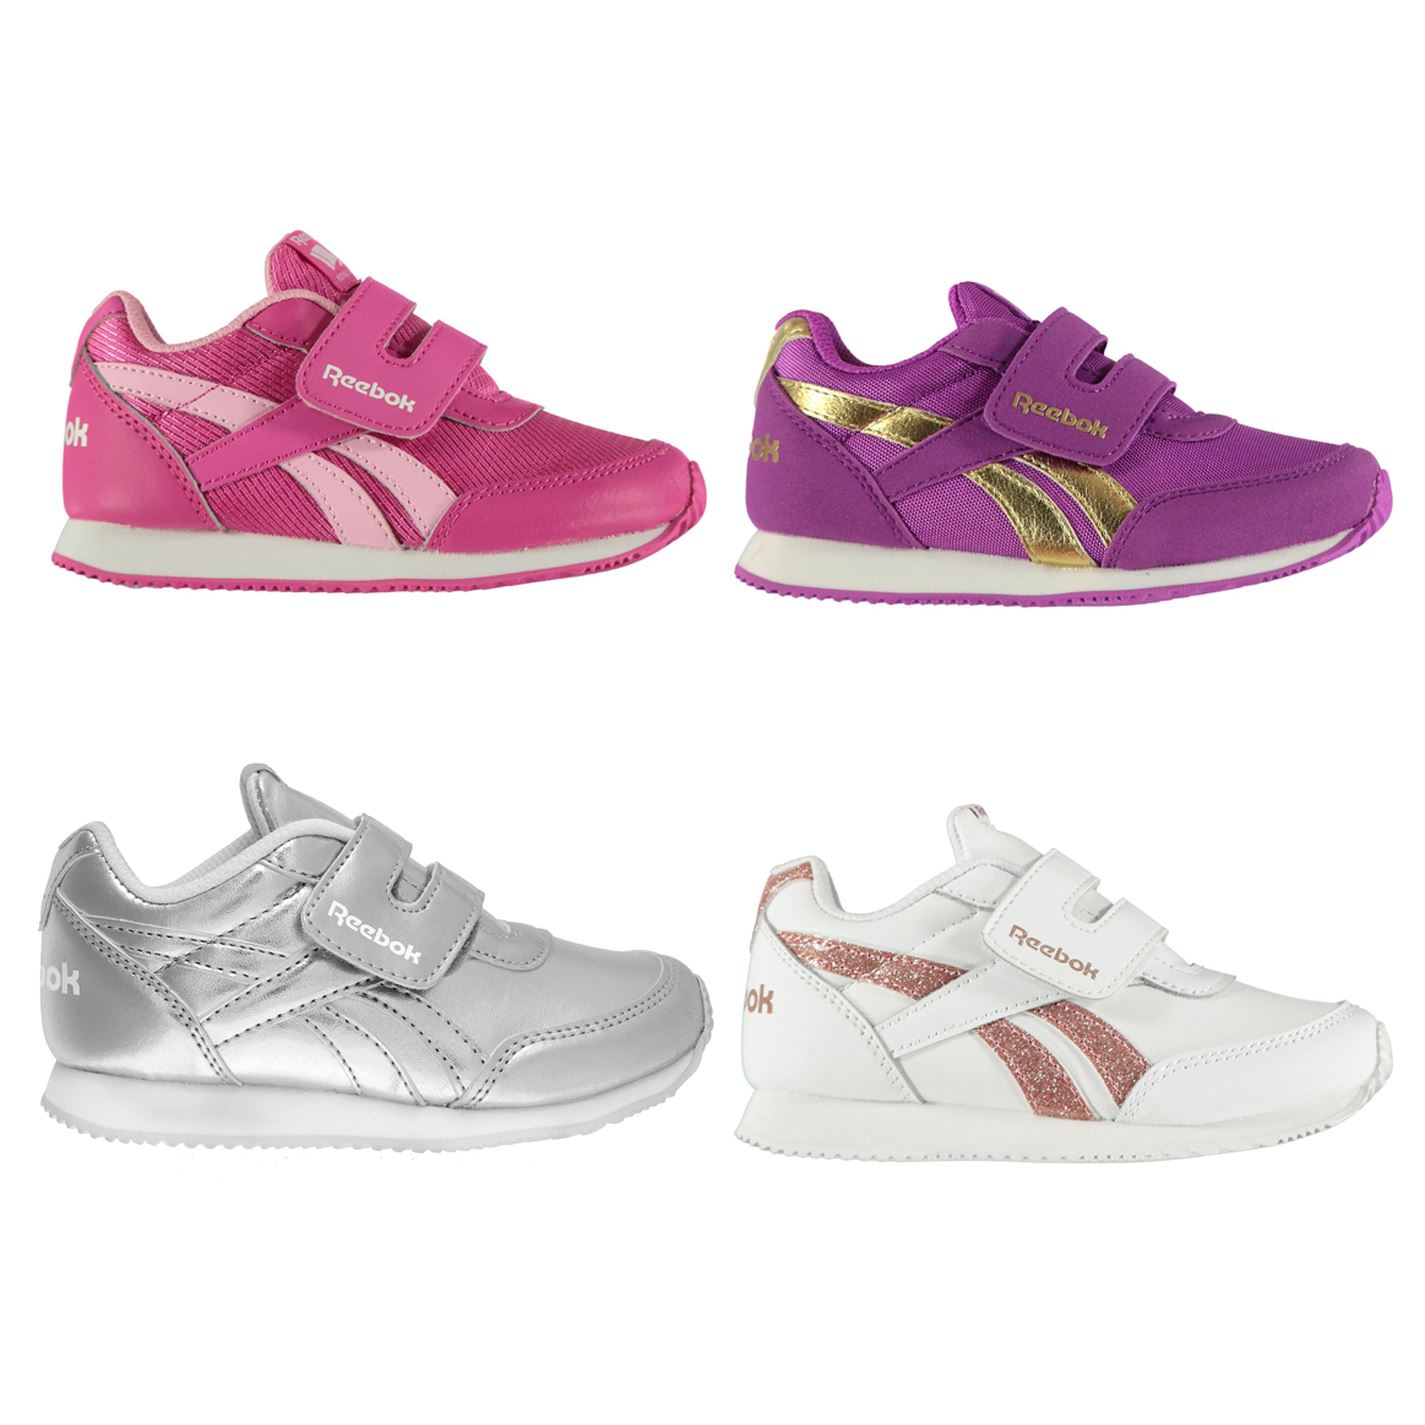 Details about Reebok Classic Jogger RS Infant Girls Trainers Shoes Footwear